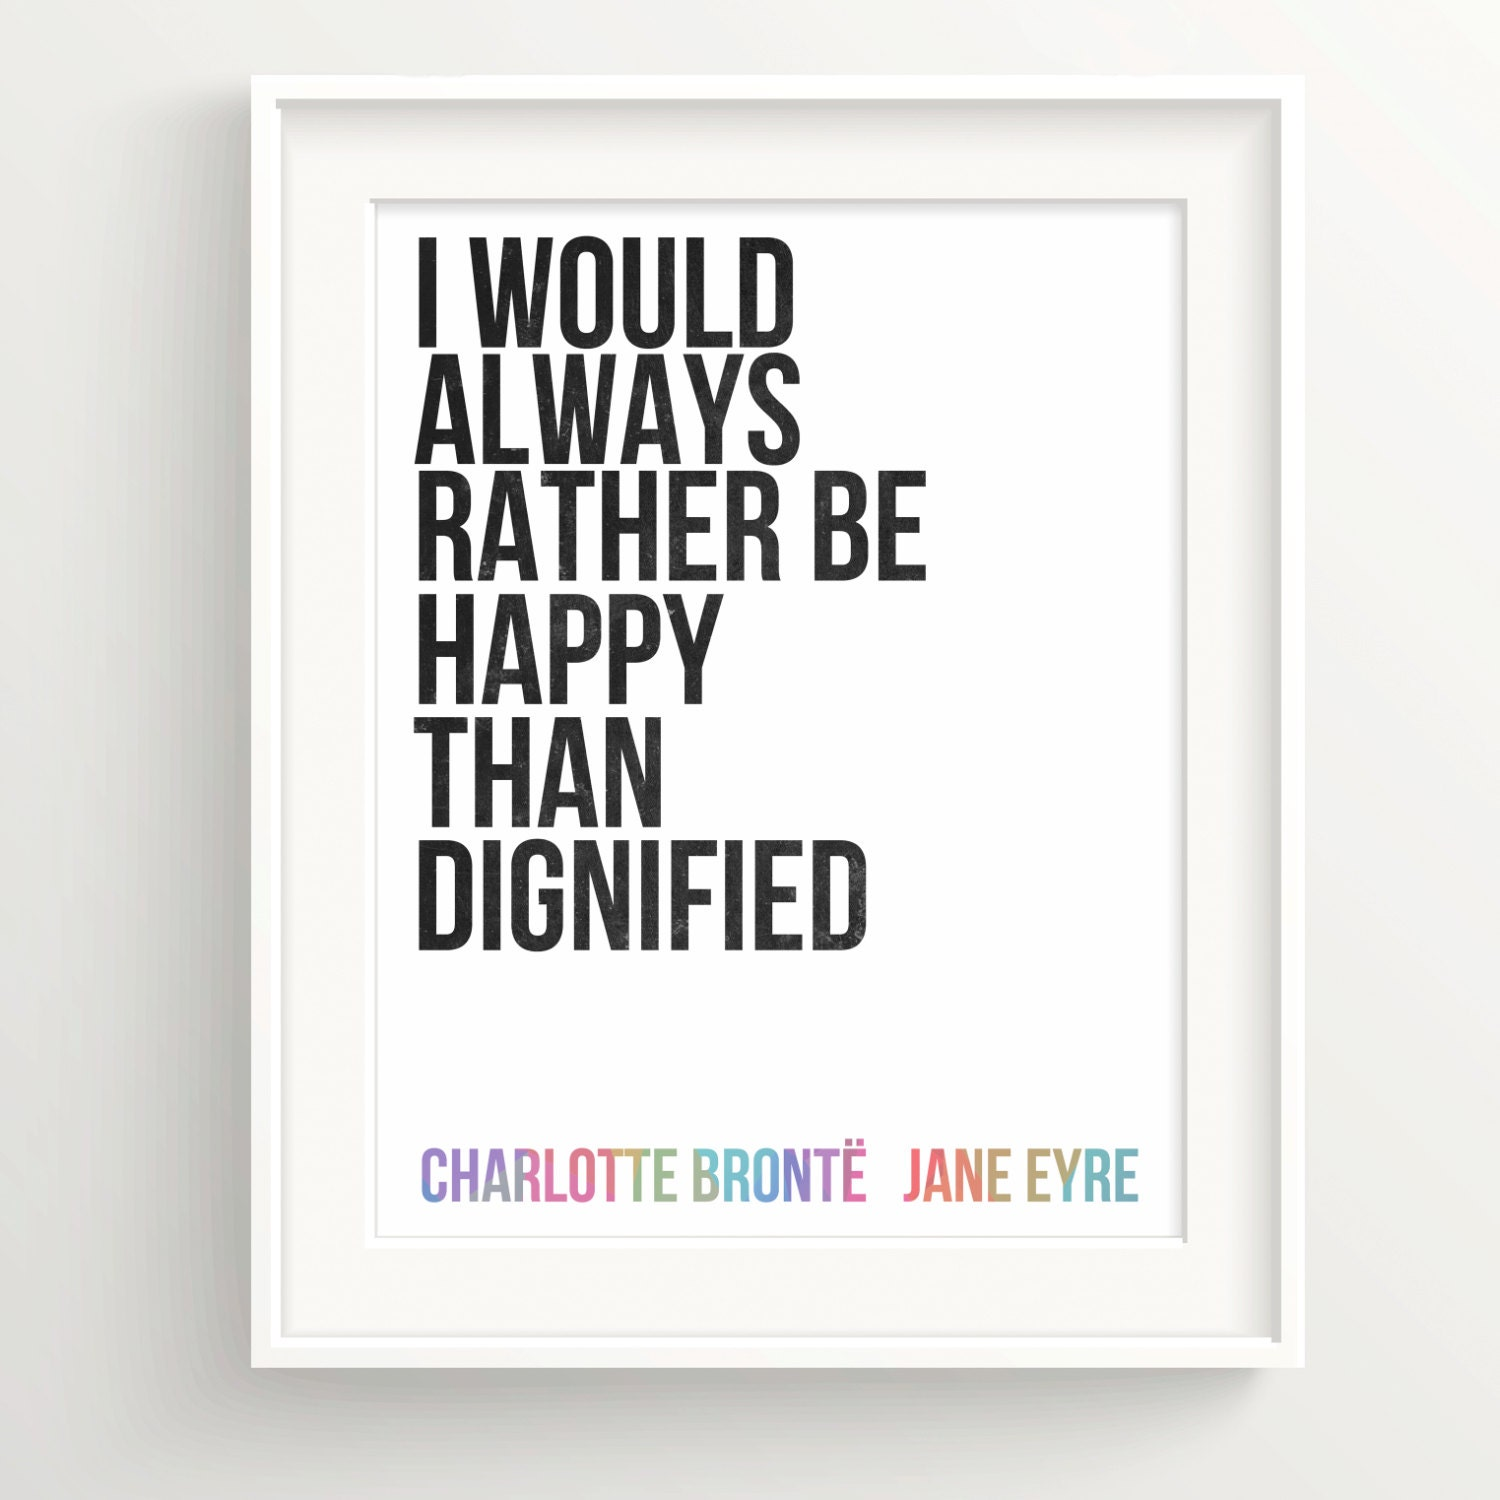 feminism in charlotte brontes jane eyre 2010-6-28 charlotte brontë on jane eyre  in spite of jane eyre's plainness,  is a woman's pilgrim's progress or a pilgrim's progress of feminism 2).